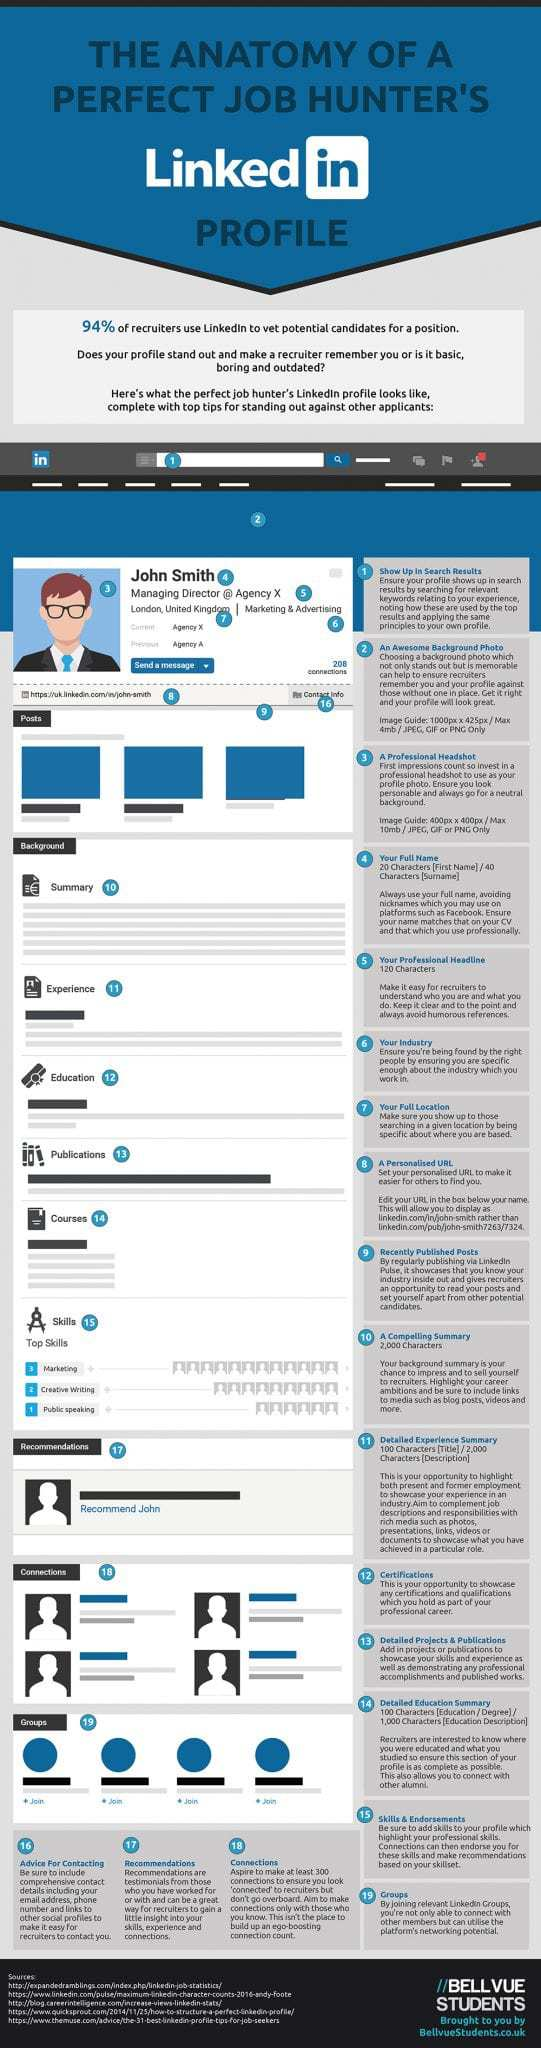 For more tips on how to optimise your LinkedIn profile and get noticed, check out this infographic.